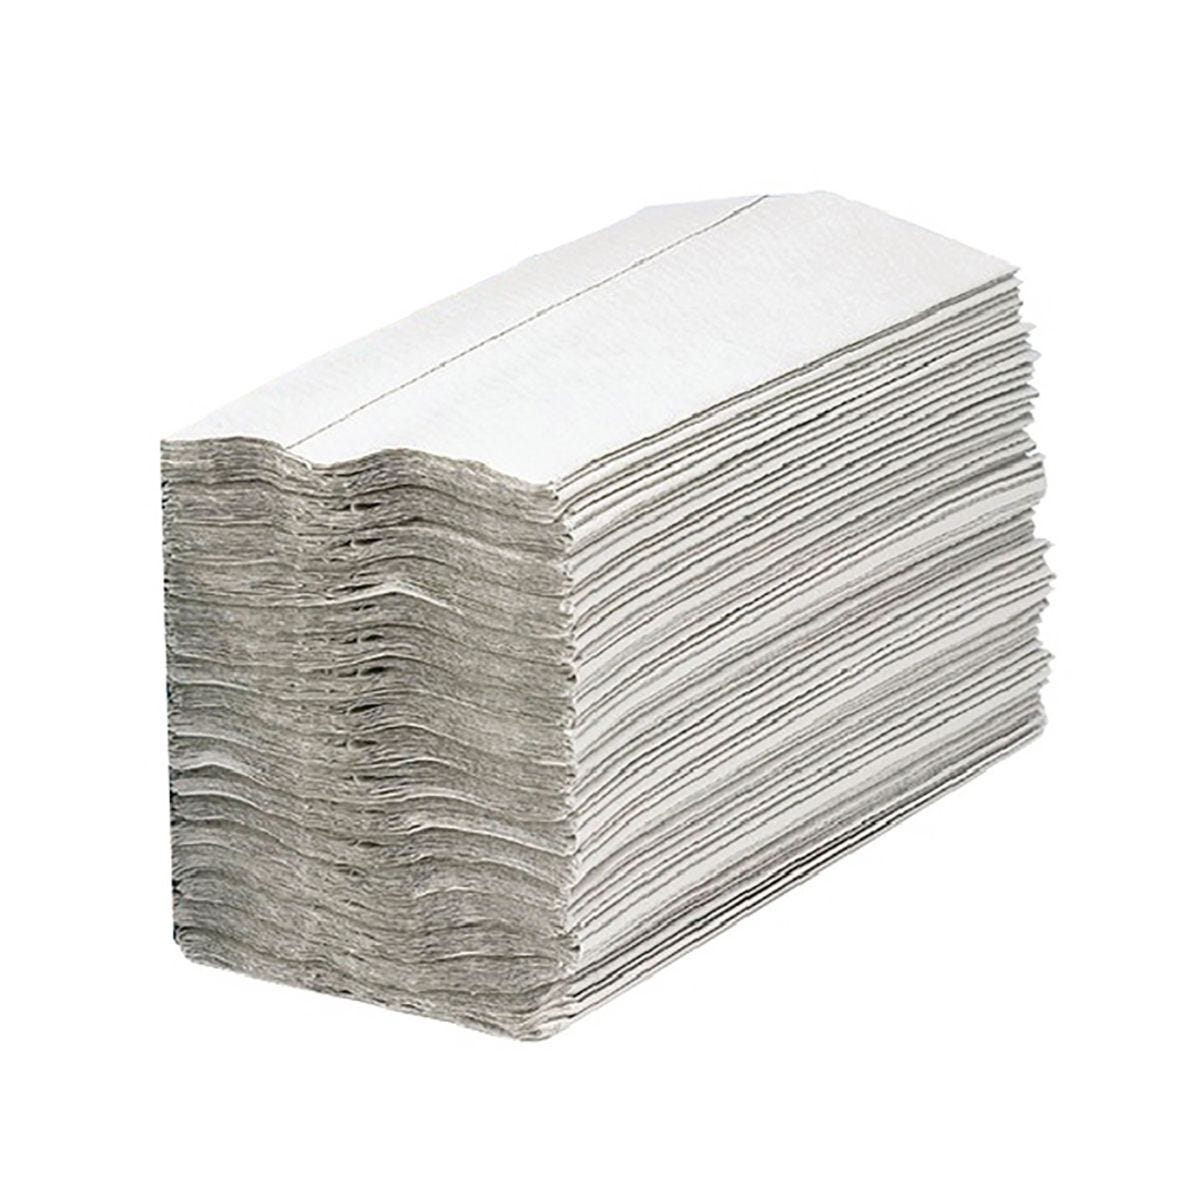 2Work White 1-Ply C-Fold Hand Towel Pack of 2955